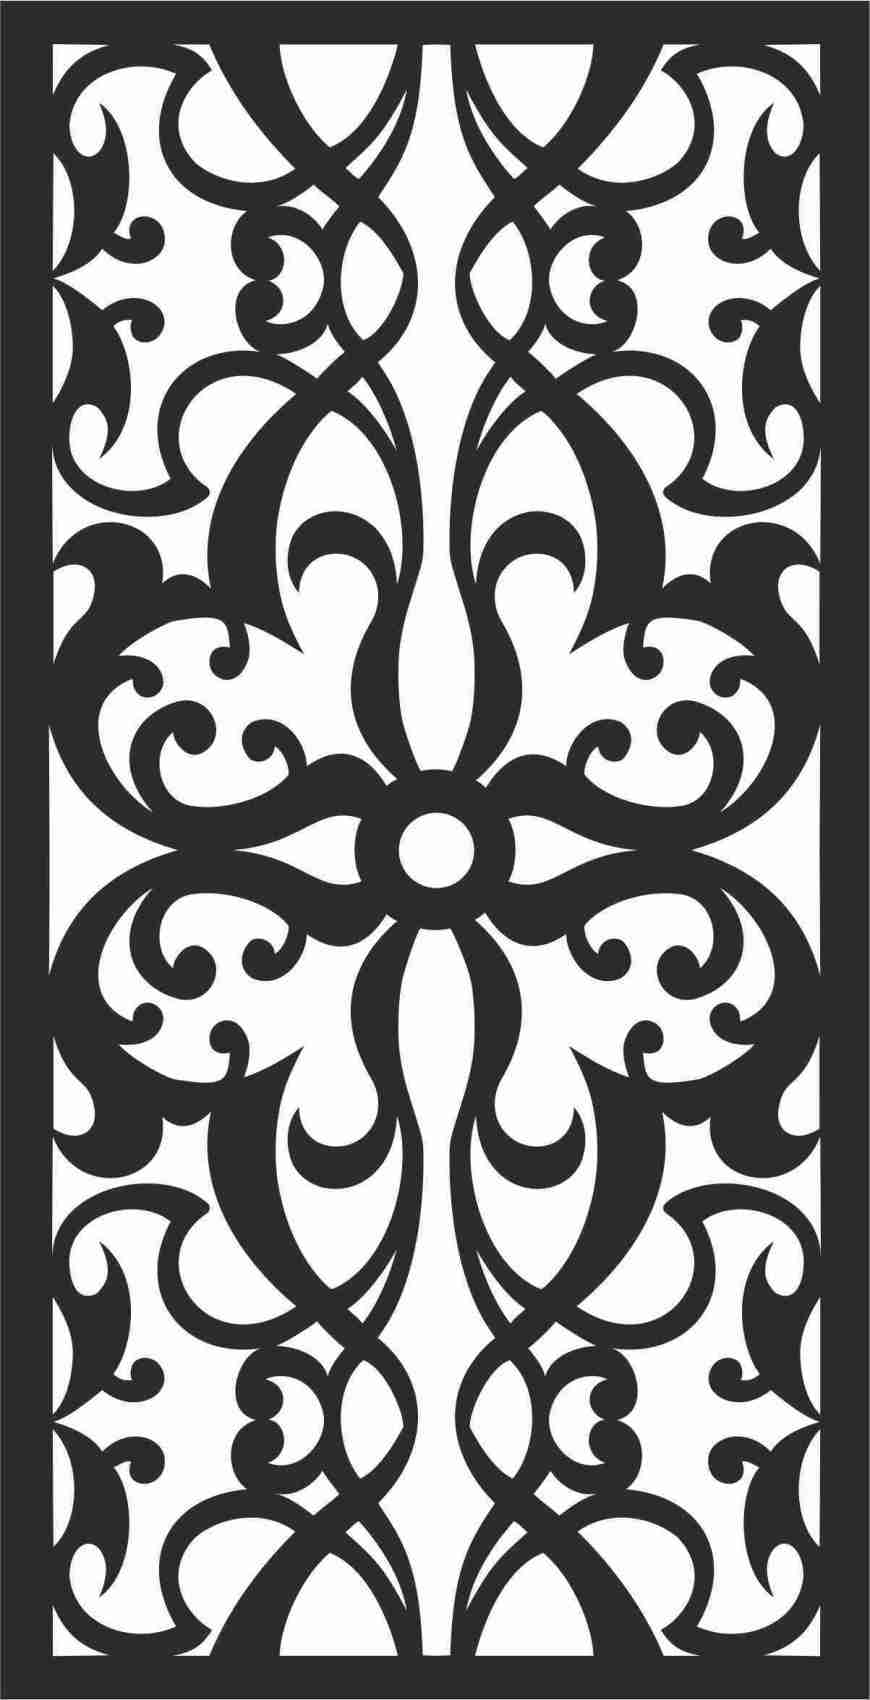 Decorative Screen Patterns For Laser Cutting 116 Free DXF File